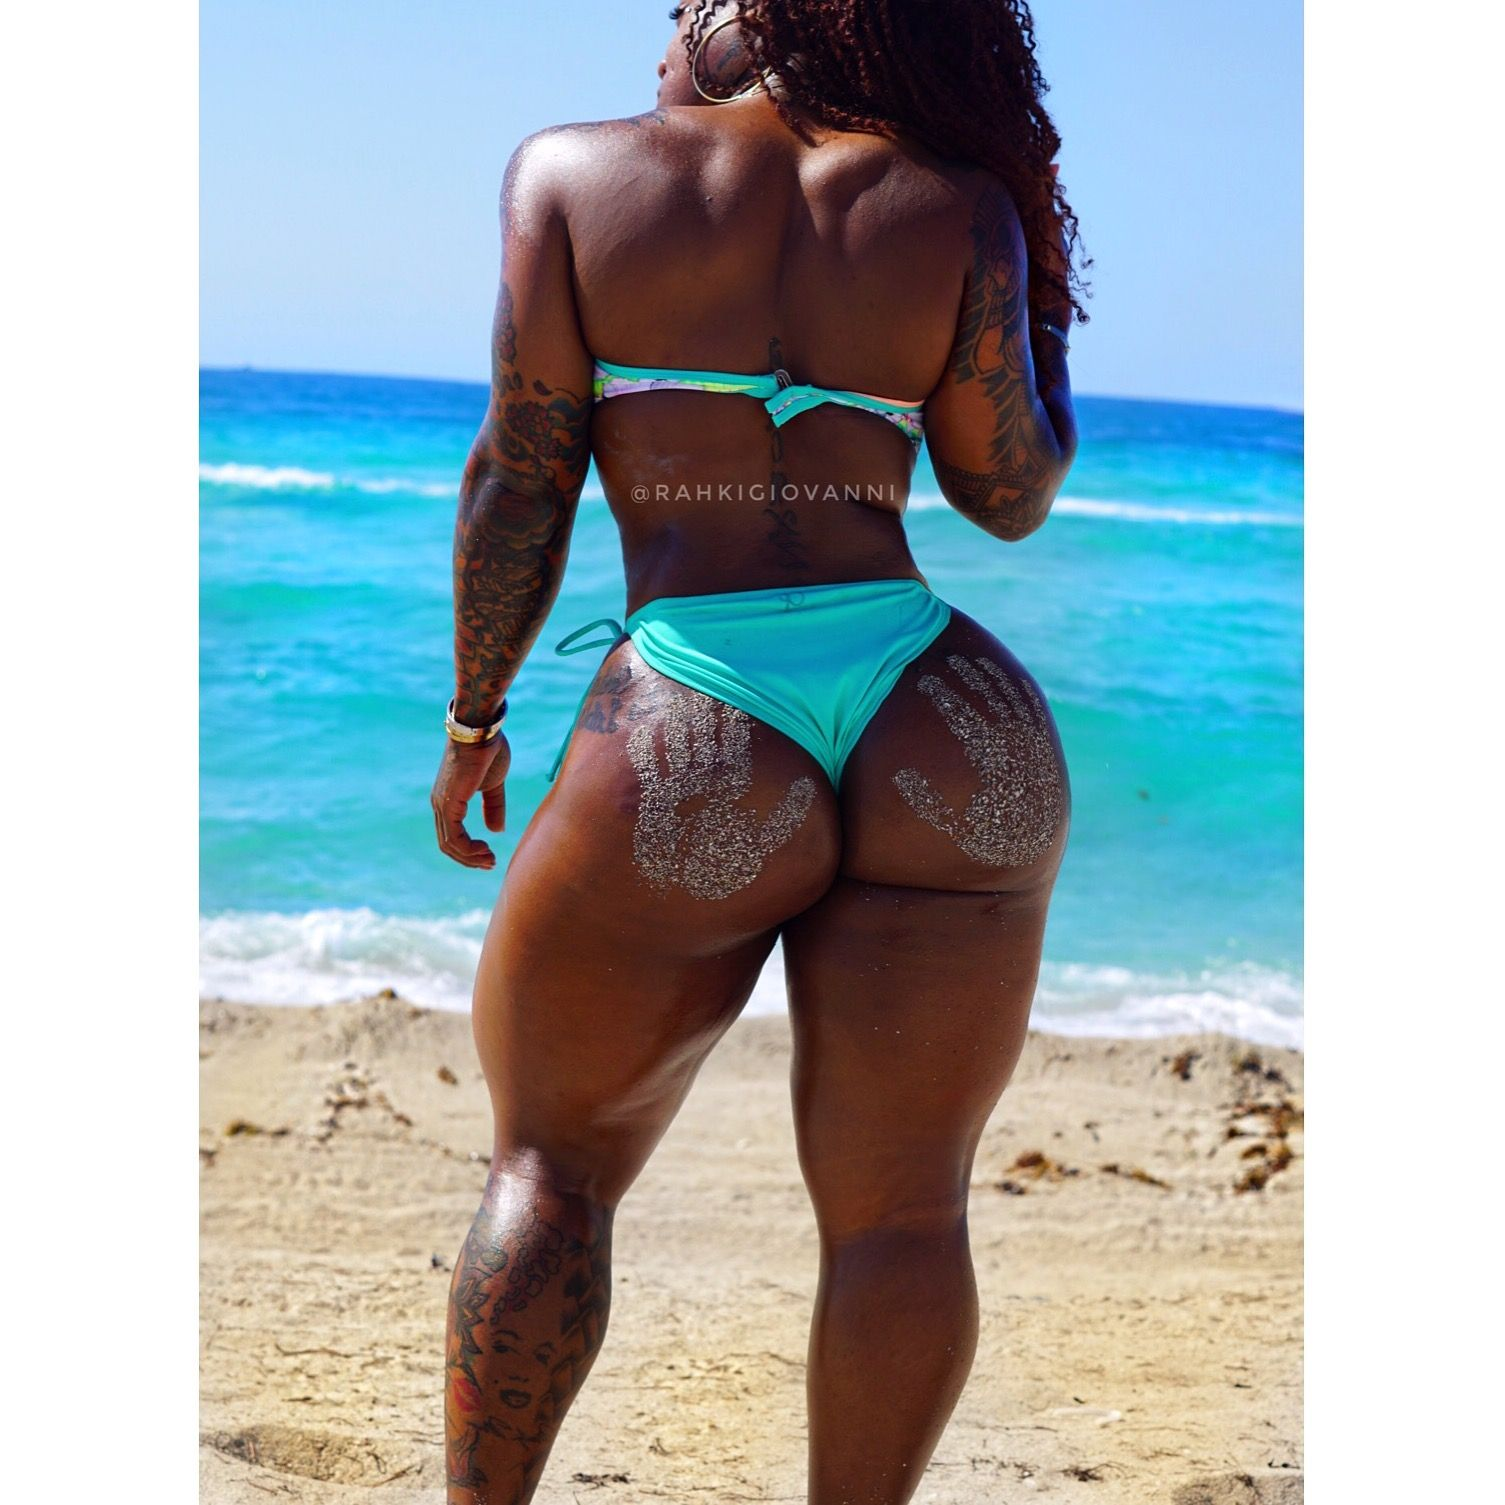 rahkigiovanni #fitness #thick #thickwoman weightloss fatloss thick